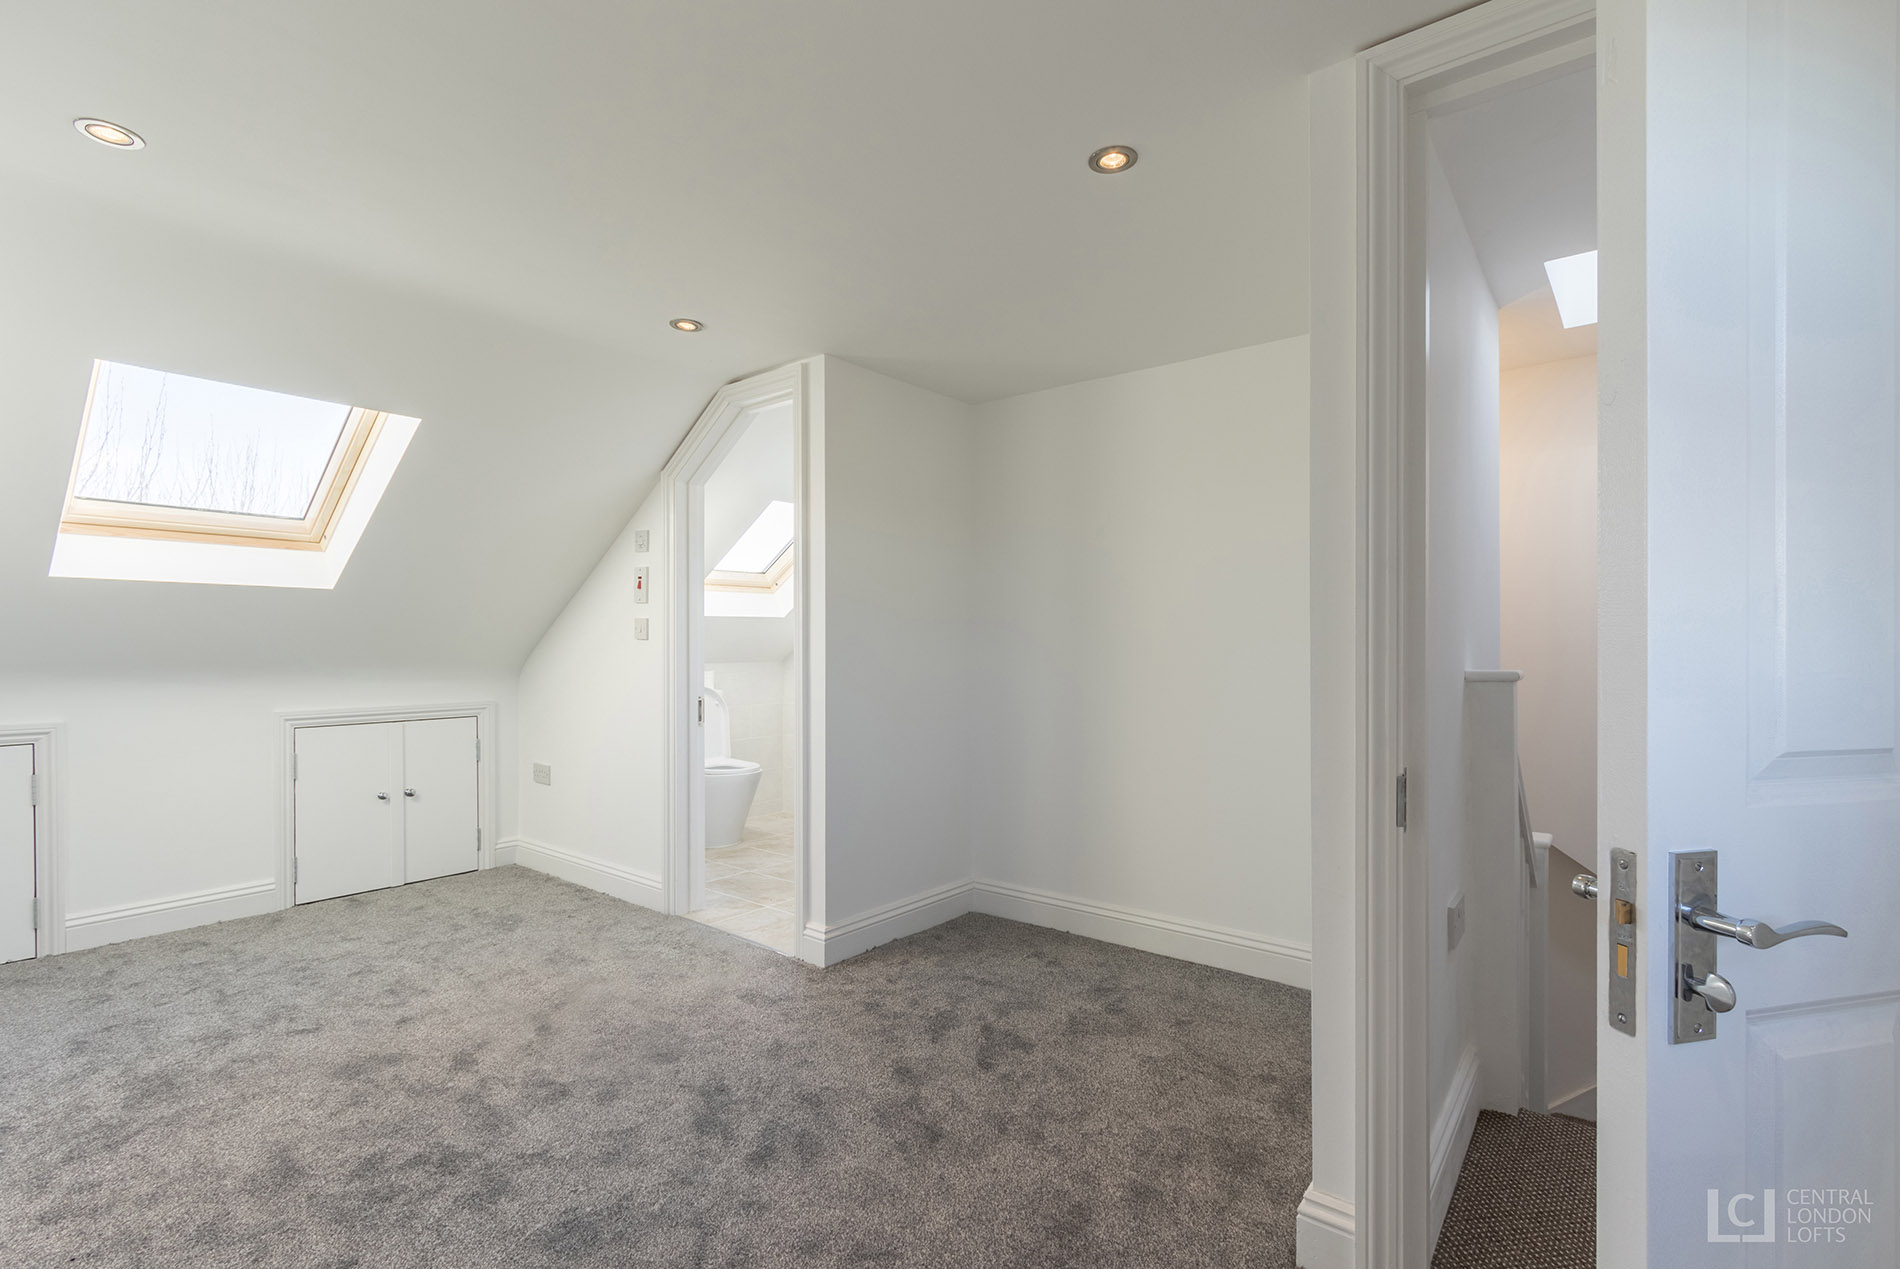 The East London Master Suite